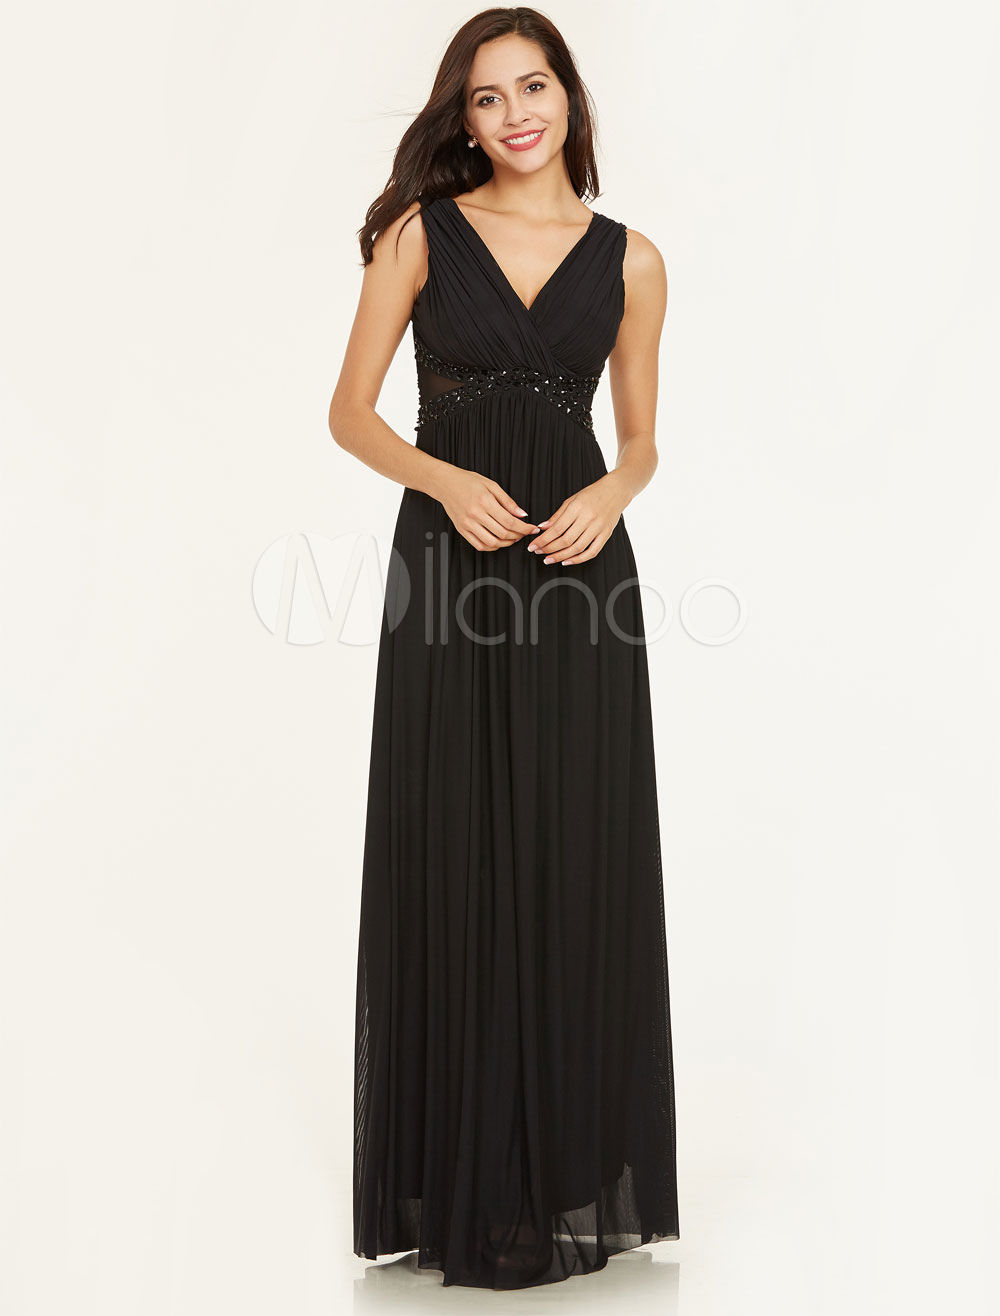 Buy Black Prom Dresses Long Chiffon V Neck Beading Illusion Waist Floor Length Formal Evening Dresses for $65.99 in Milanoo store